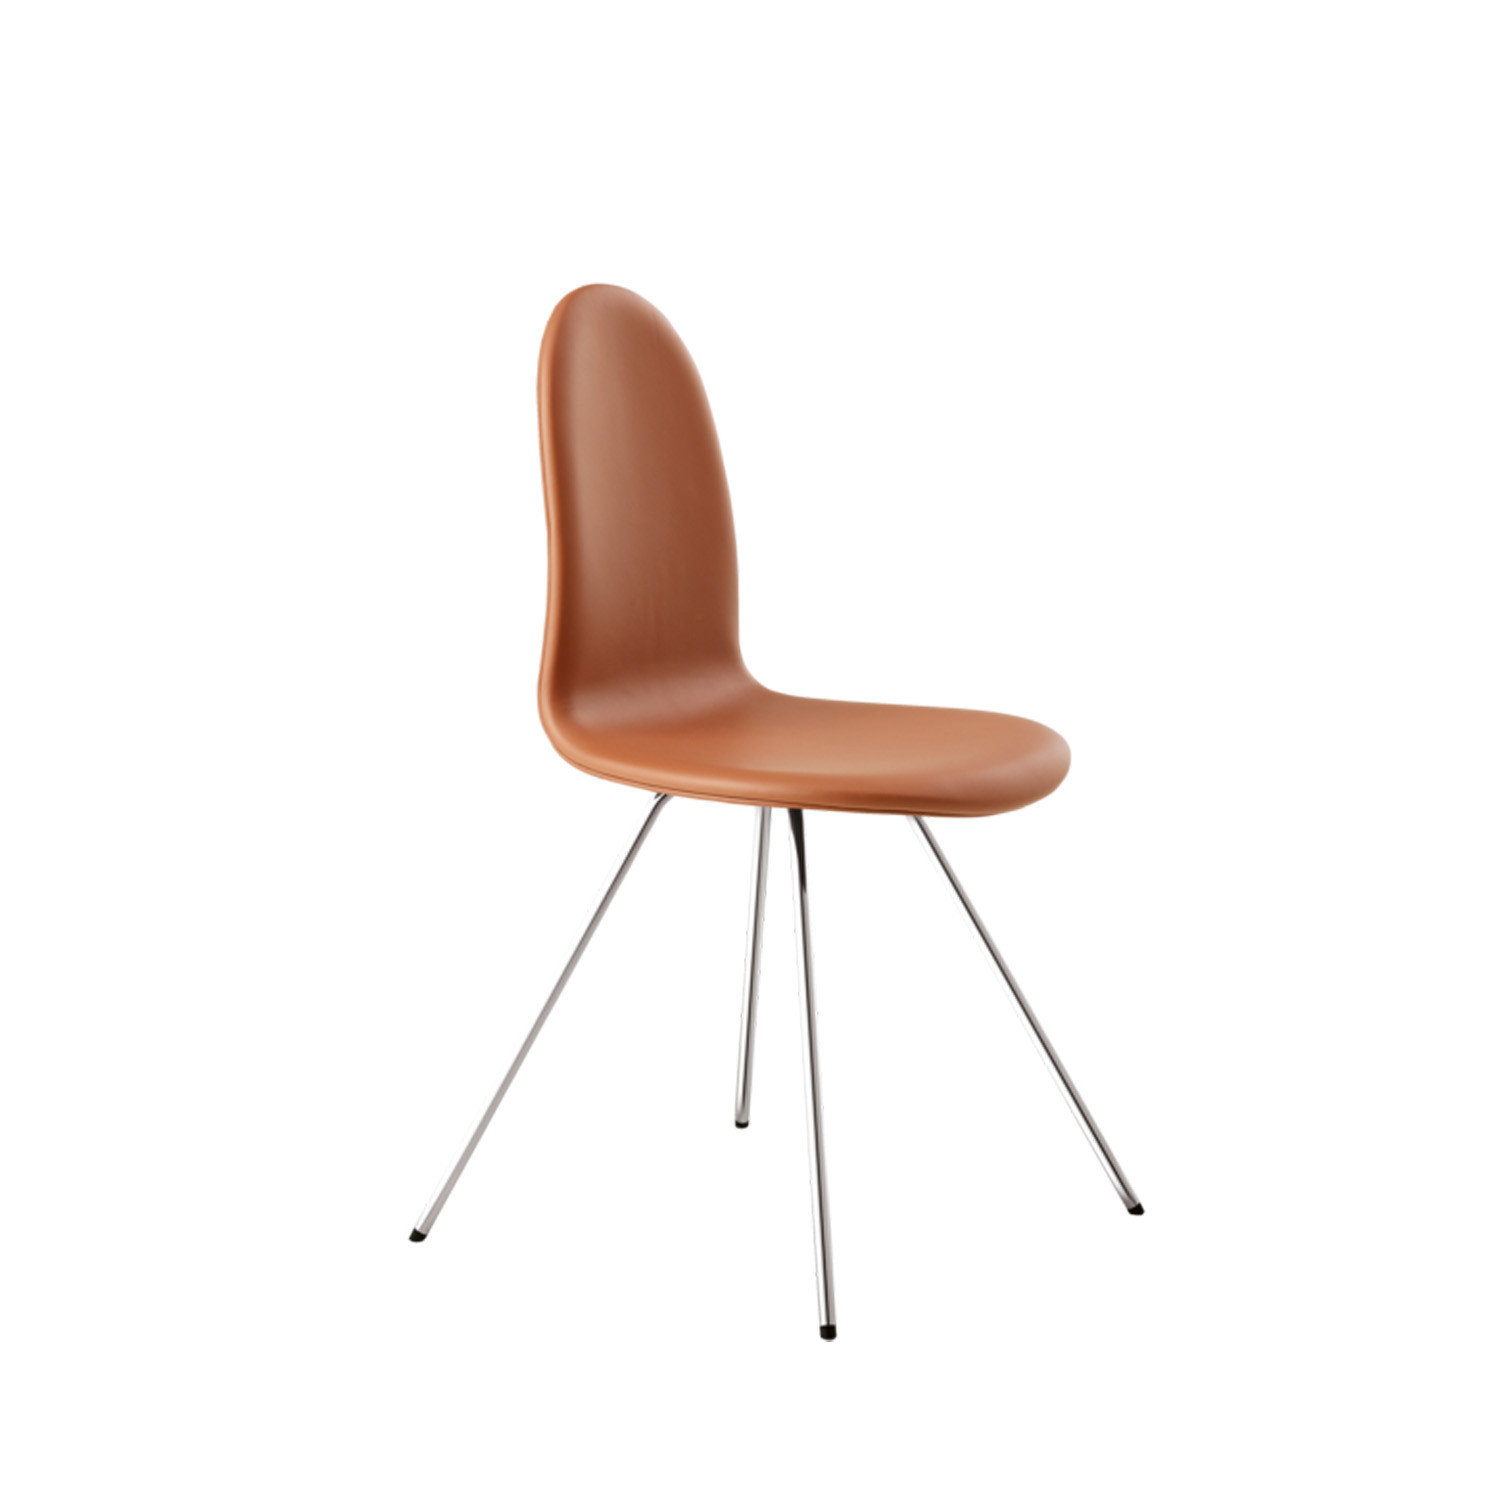 Tongue Chair for Breakout Areas